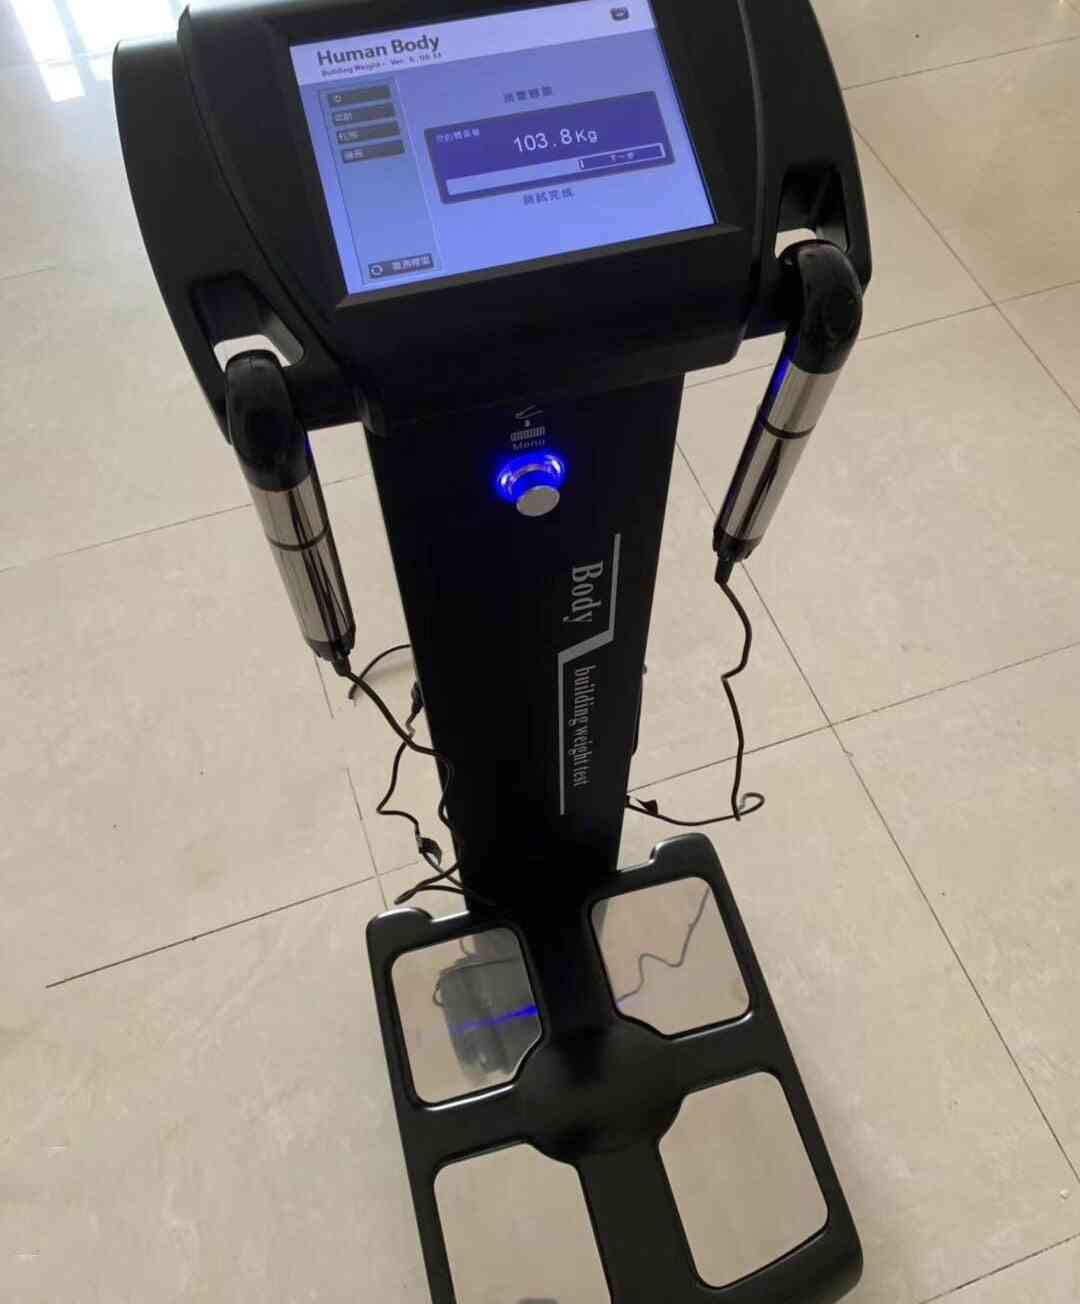 Sports Club Health Human Body Elements -analysis Weighting Scales Beauty Care For Weight Loss Body Composition Analyzer